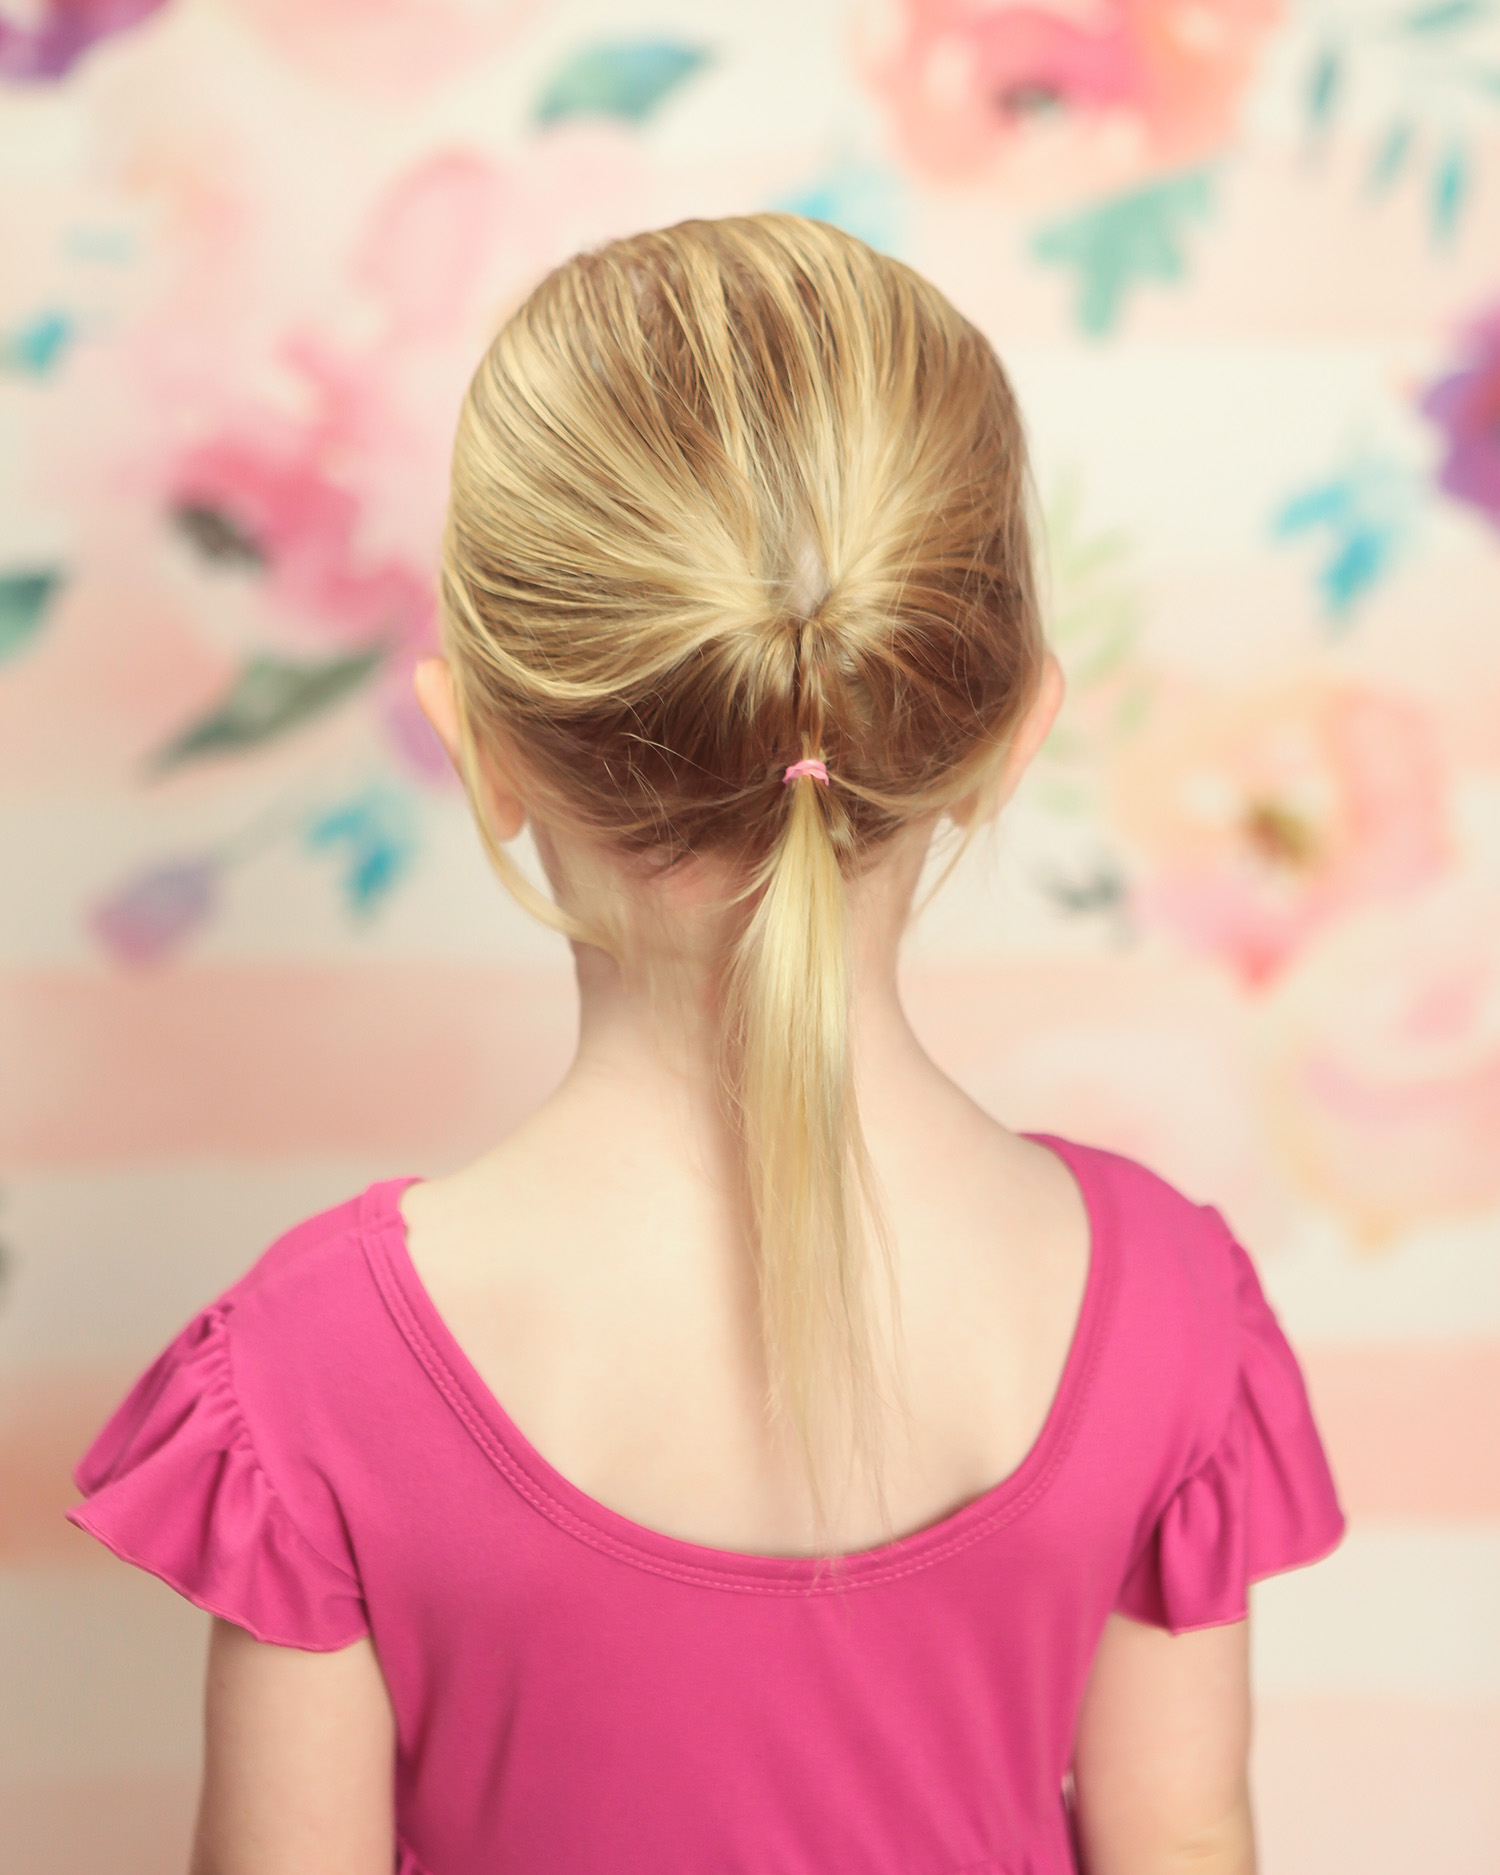 Toddler Hairstyles: This twisted ponytail takes less than 3 minutes!